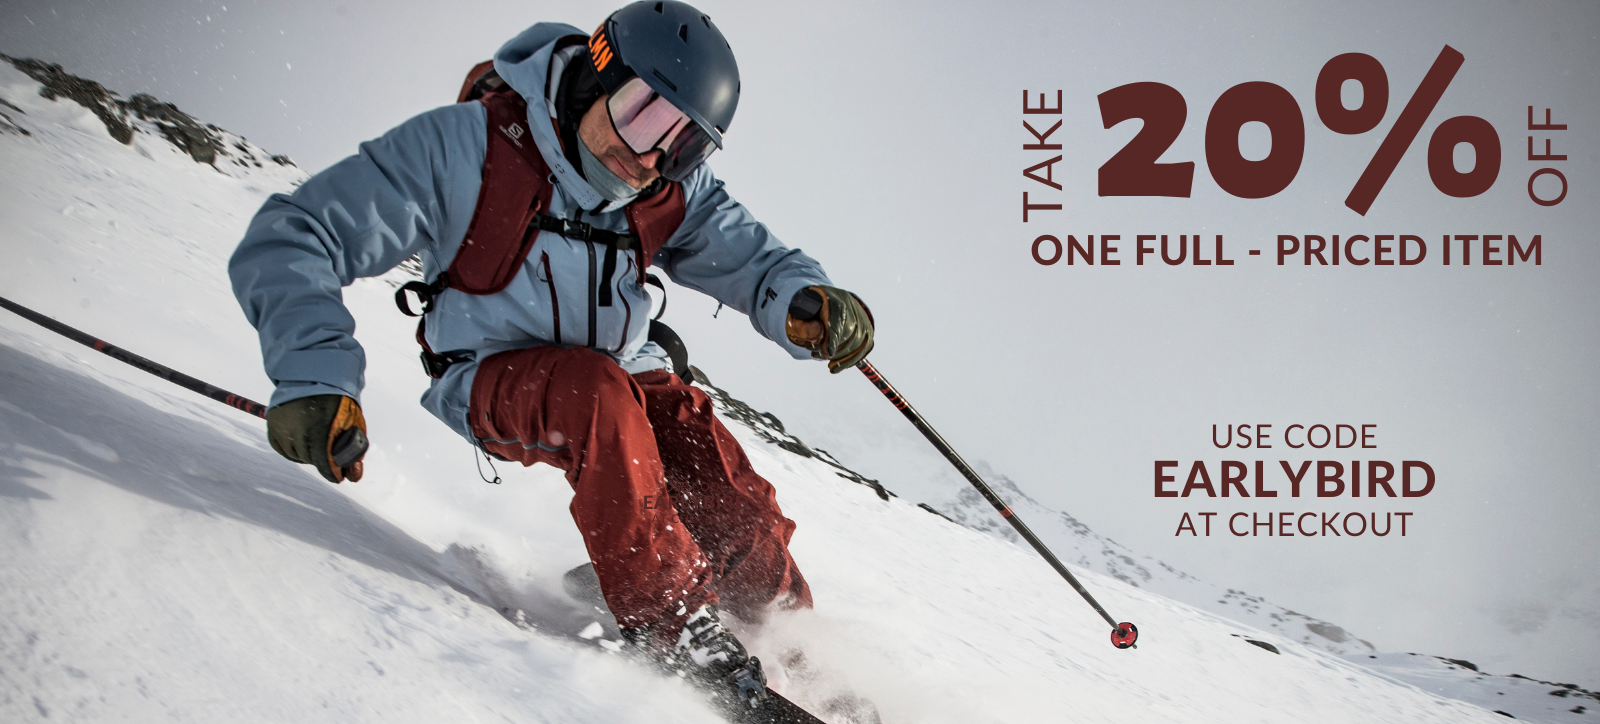 Make your own Black Friday Sale - 20% off one full-priced item at northernskiworks.com